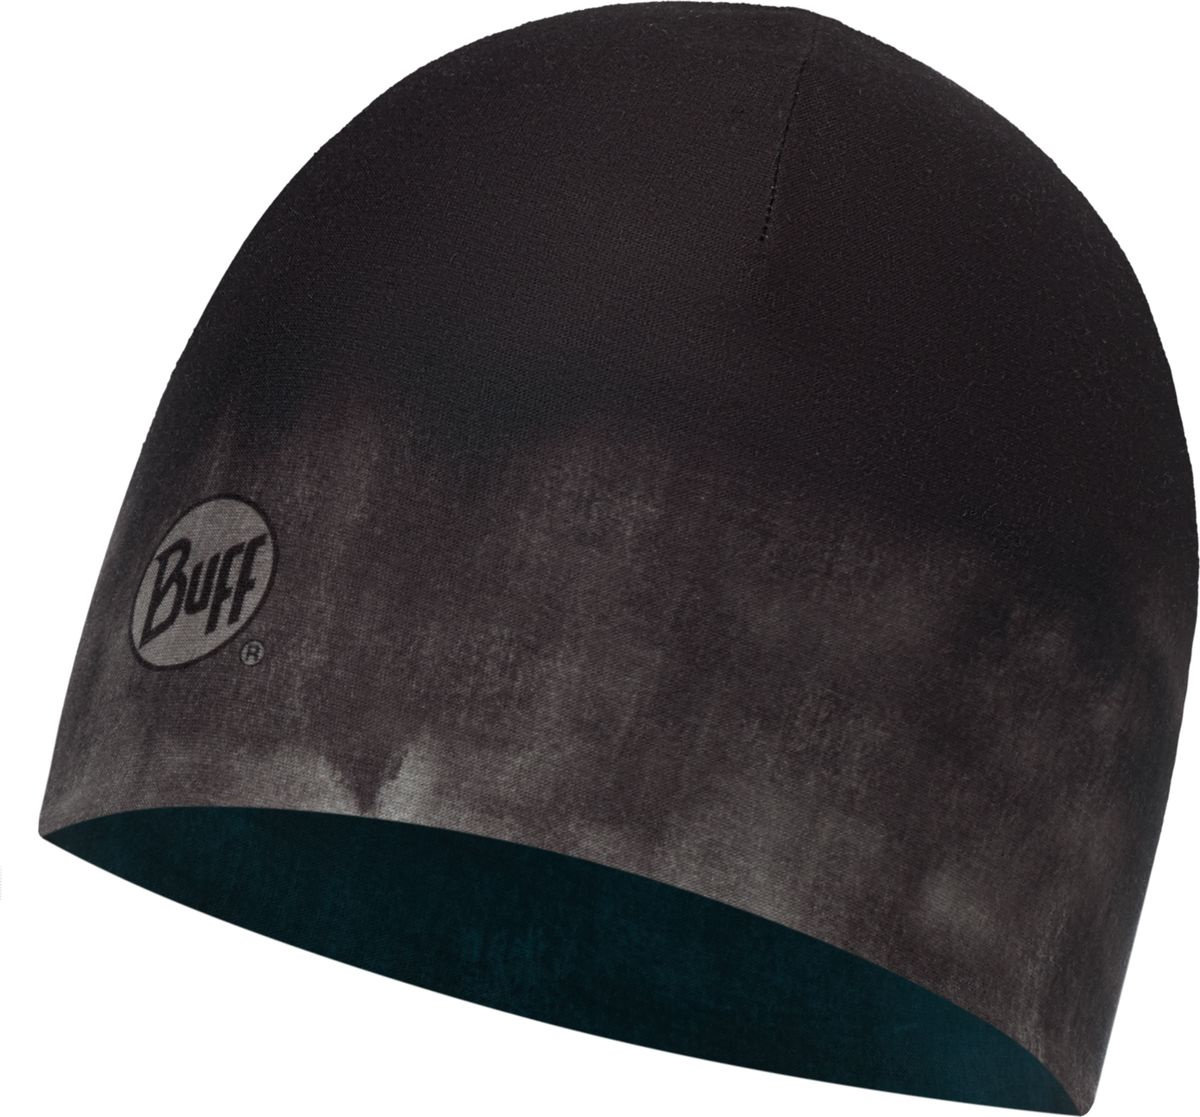 Шапка Buff Microfiber Reversible Hat rotkar grey 3 Microfiber Reversible Hat BU 117107.937.10.00